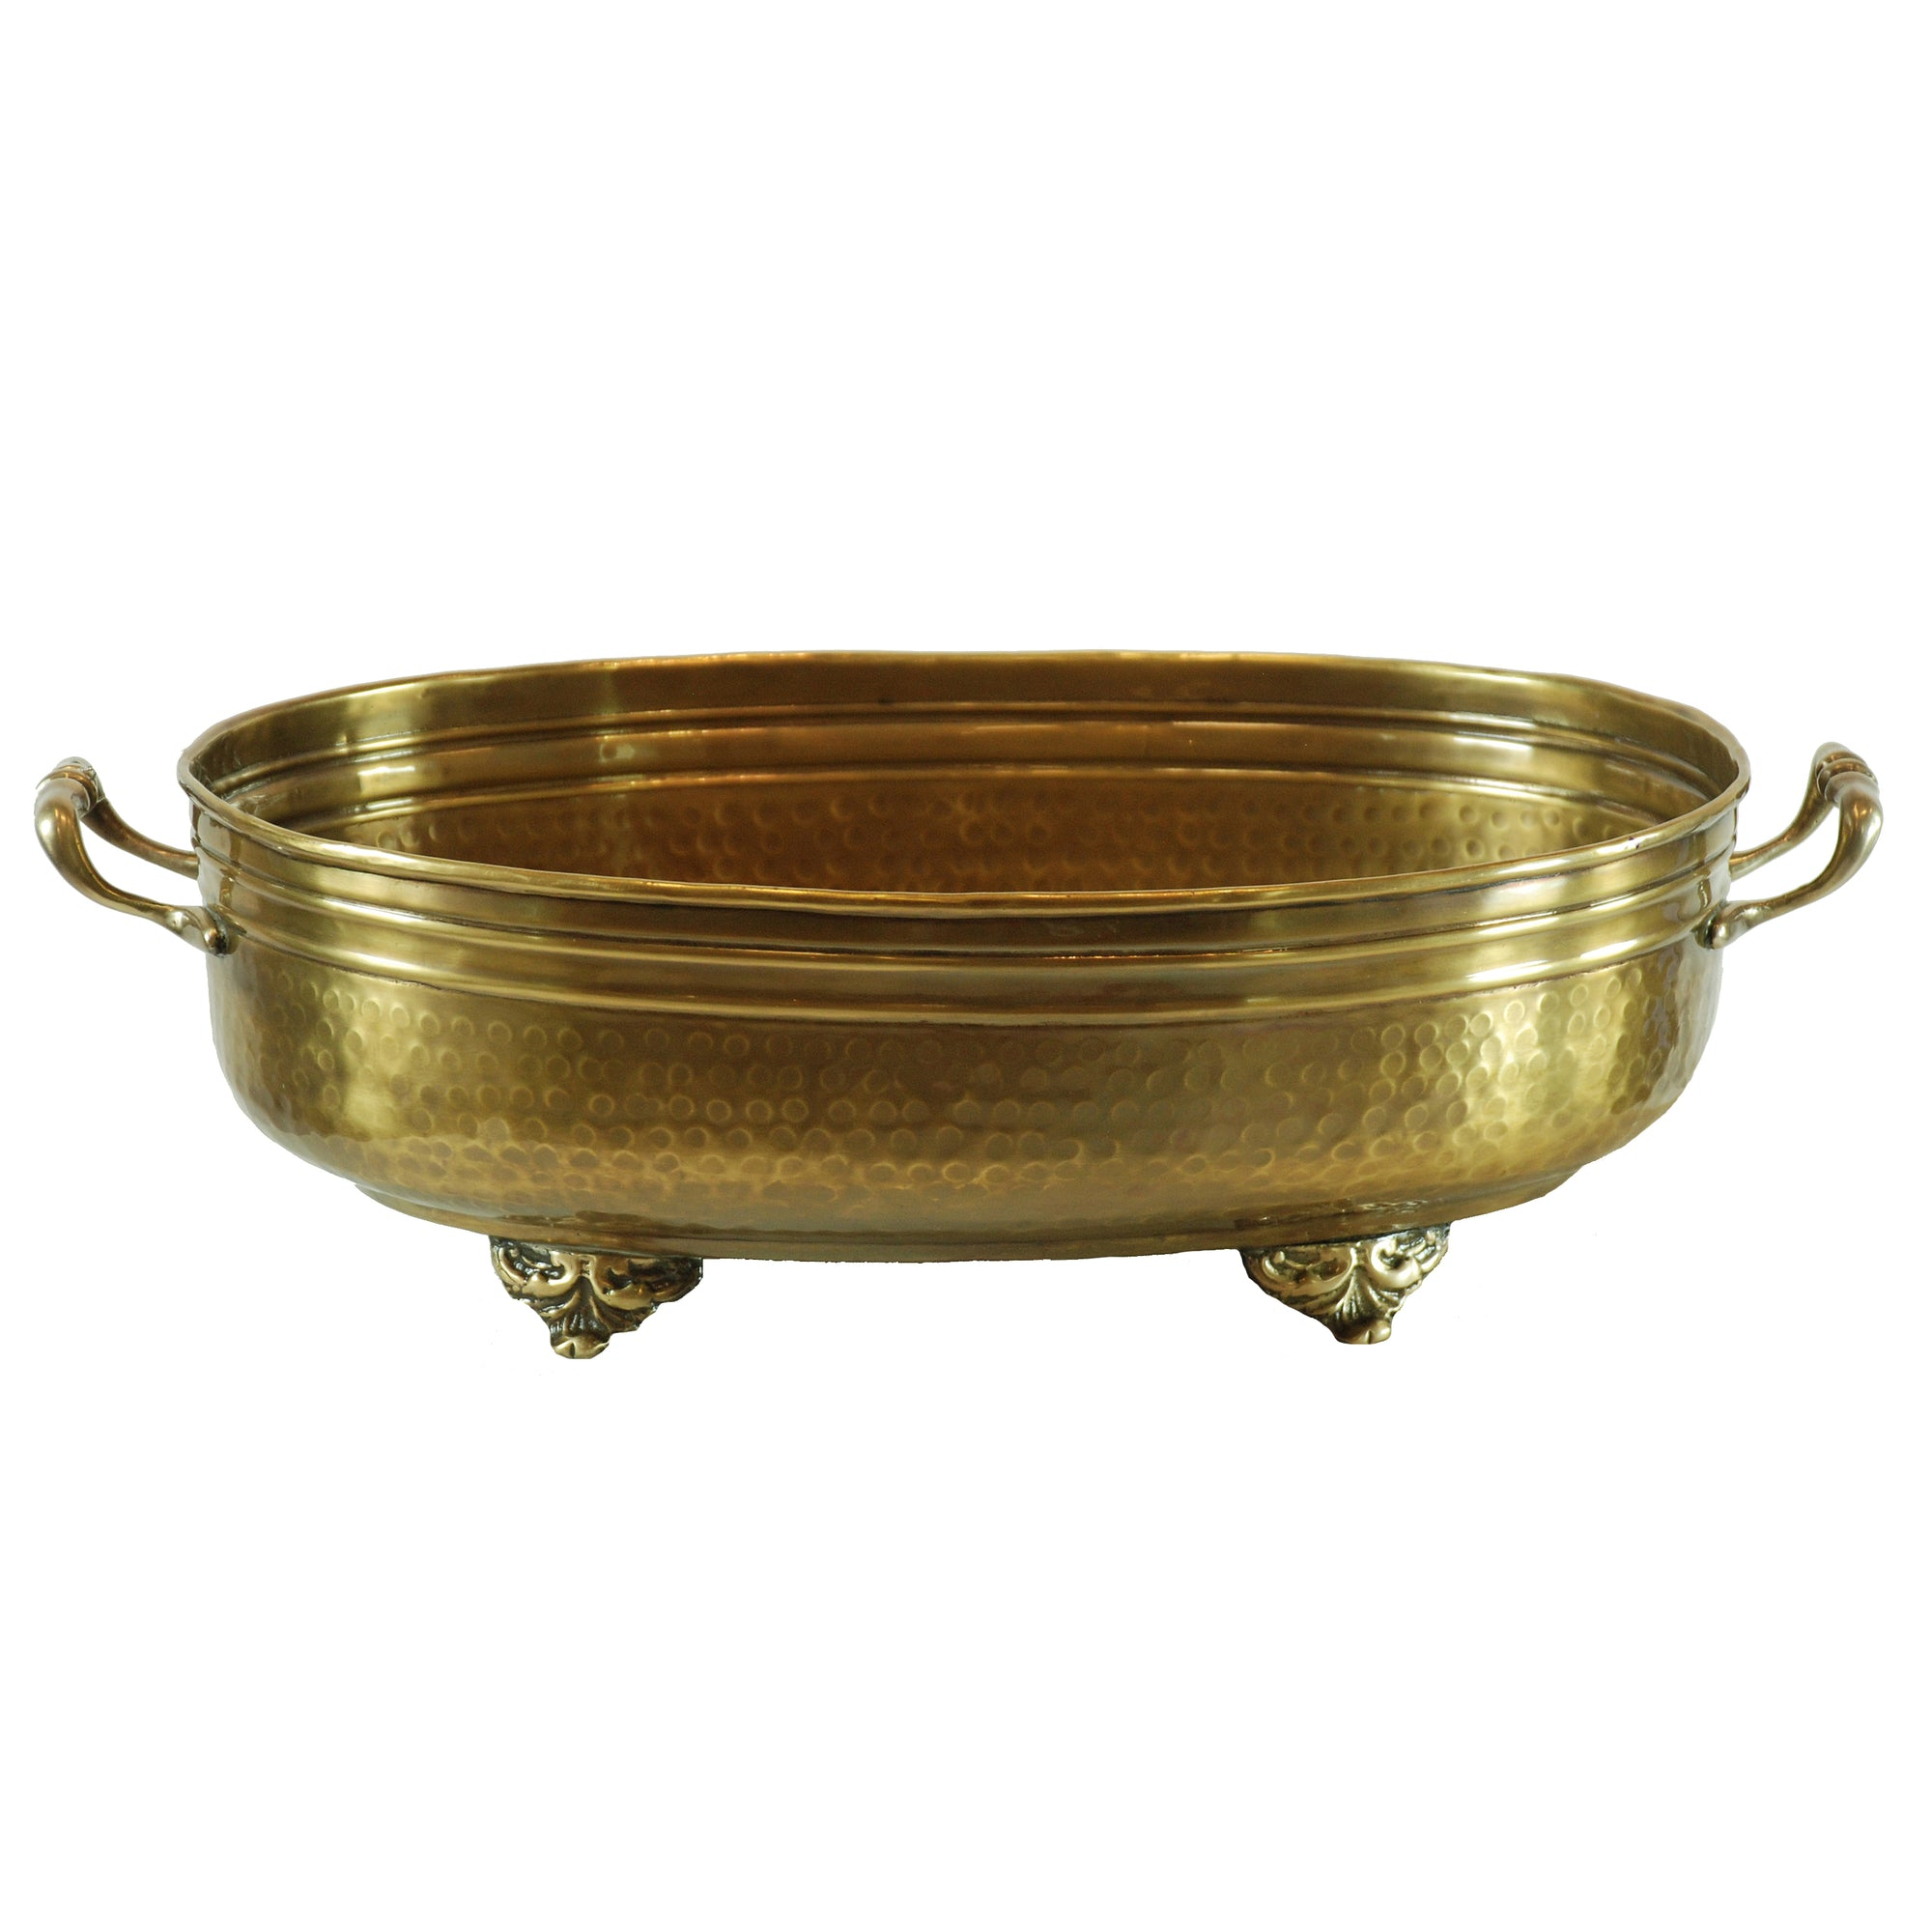 Oval brass metal planter with handle